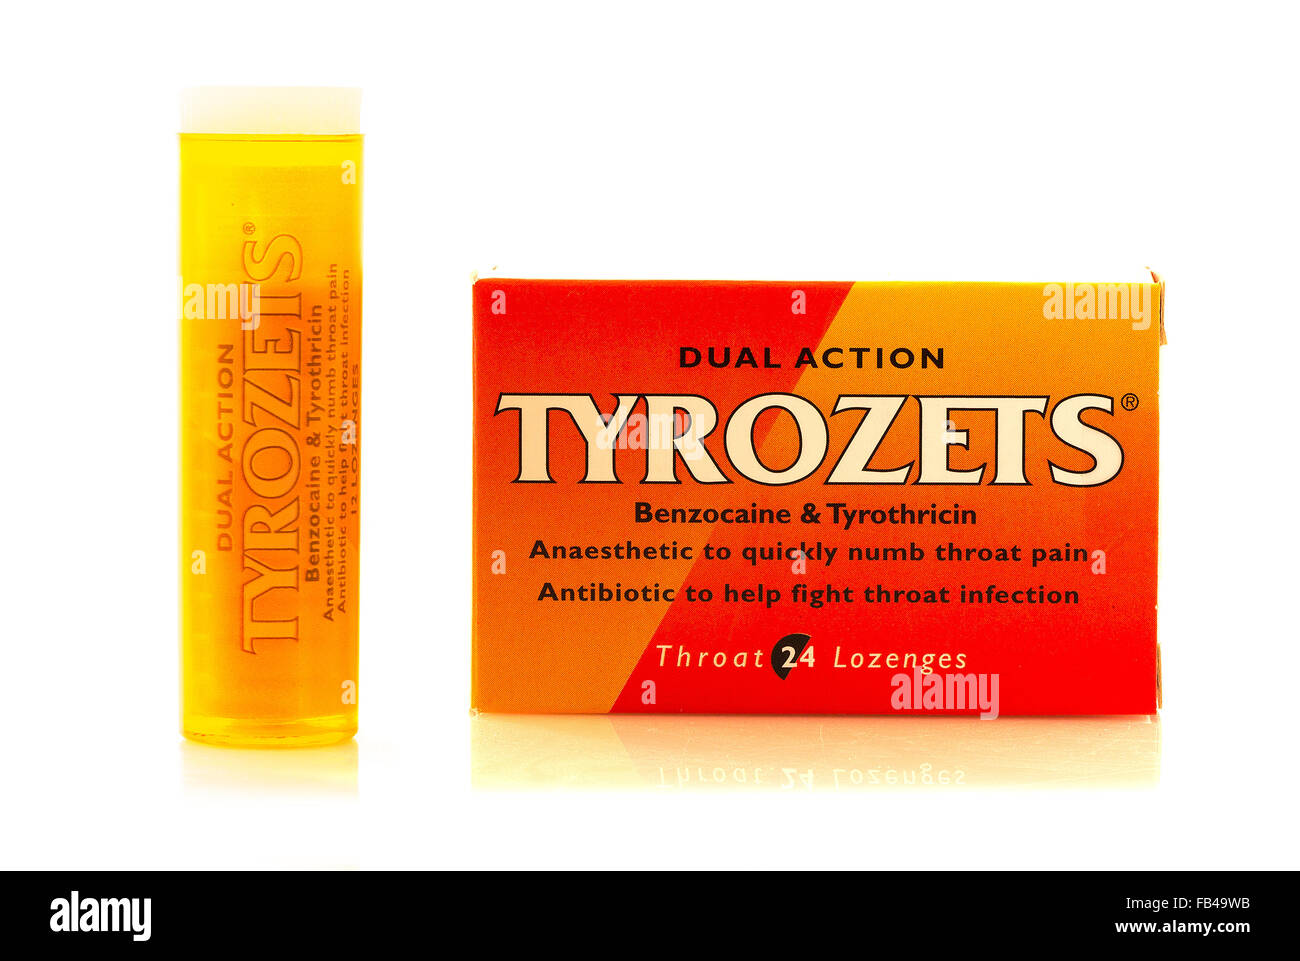 Tyrozets Dual Action anaesthetic lozenges for painful sore throats and mouth infections - Stock Image